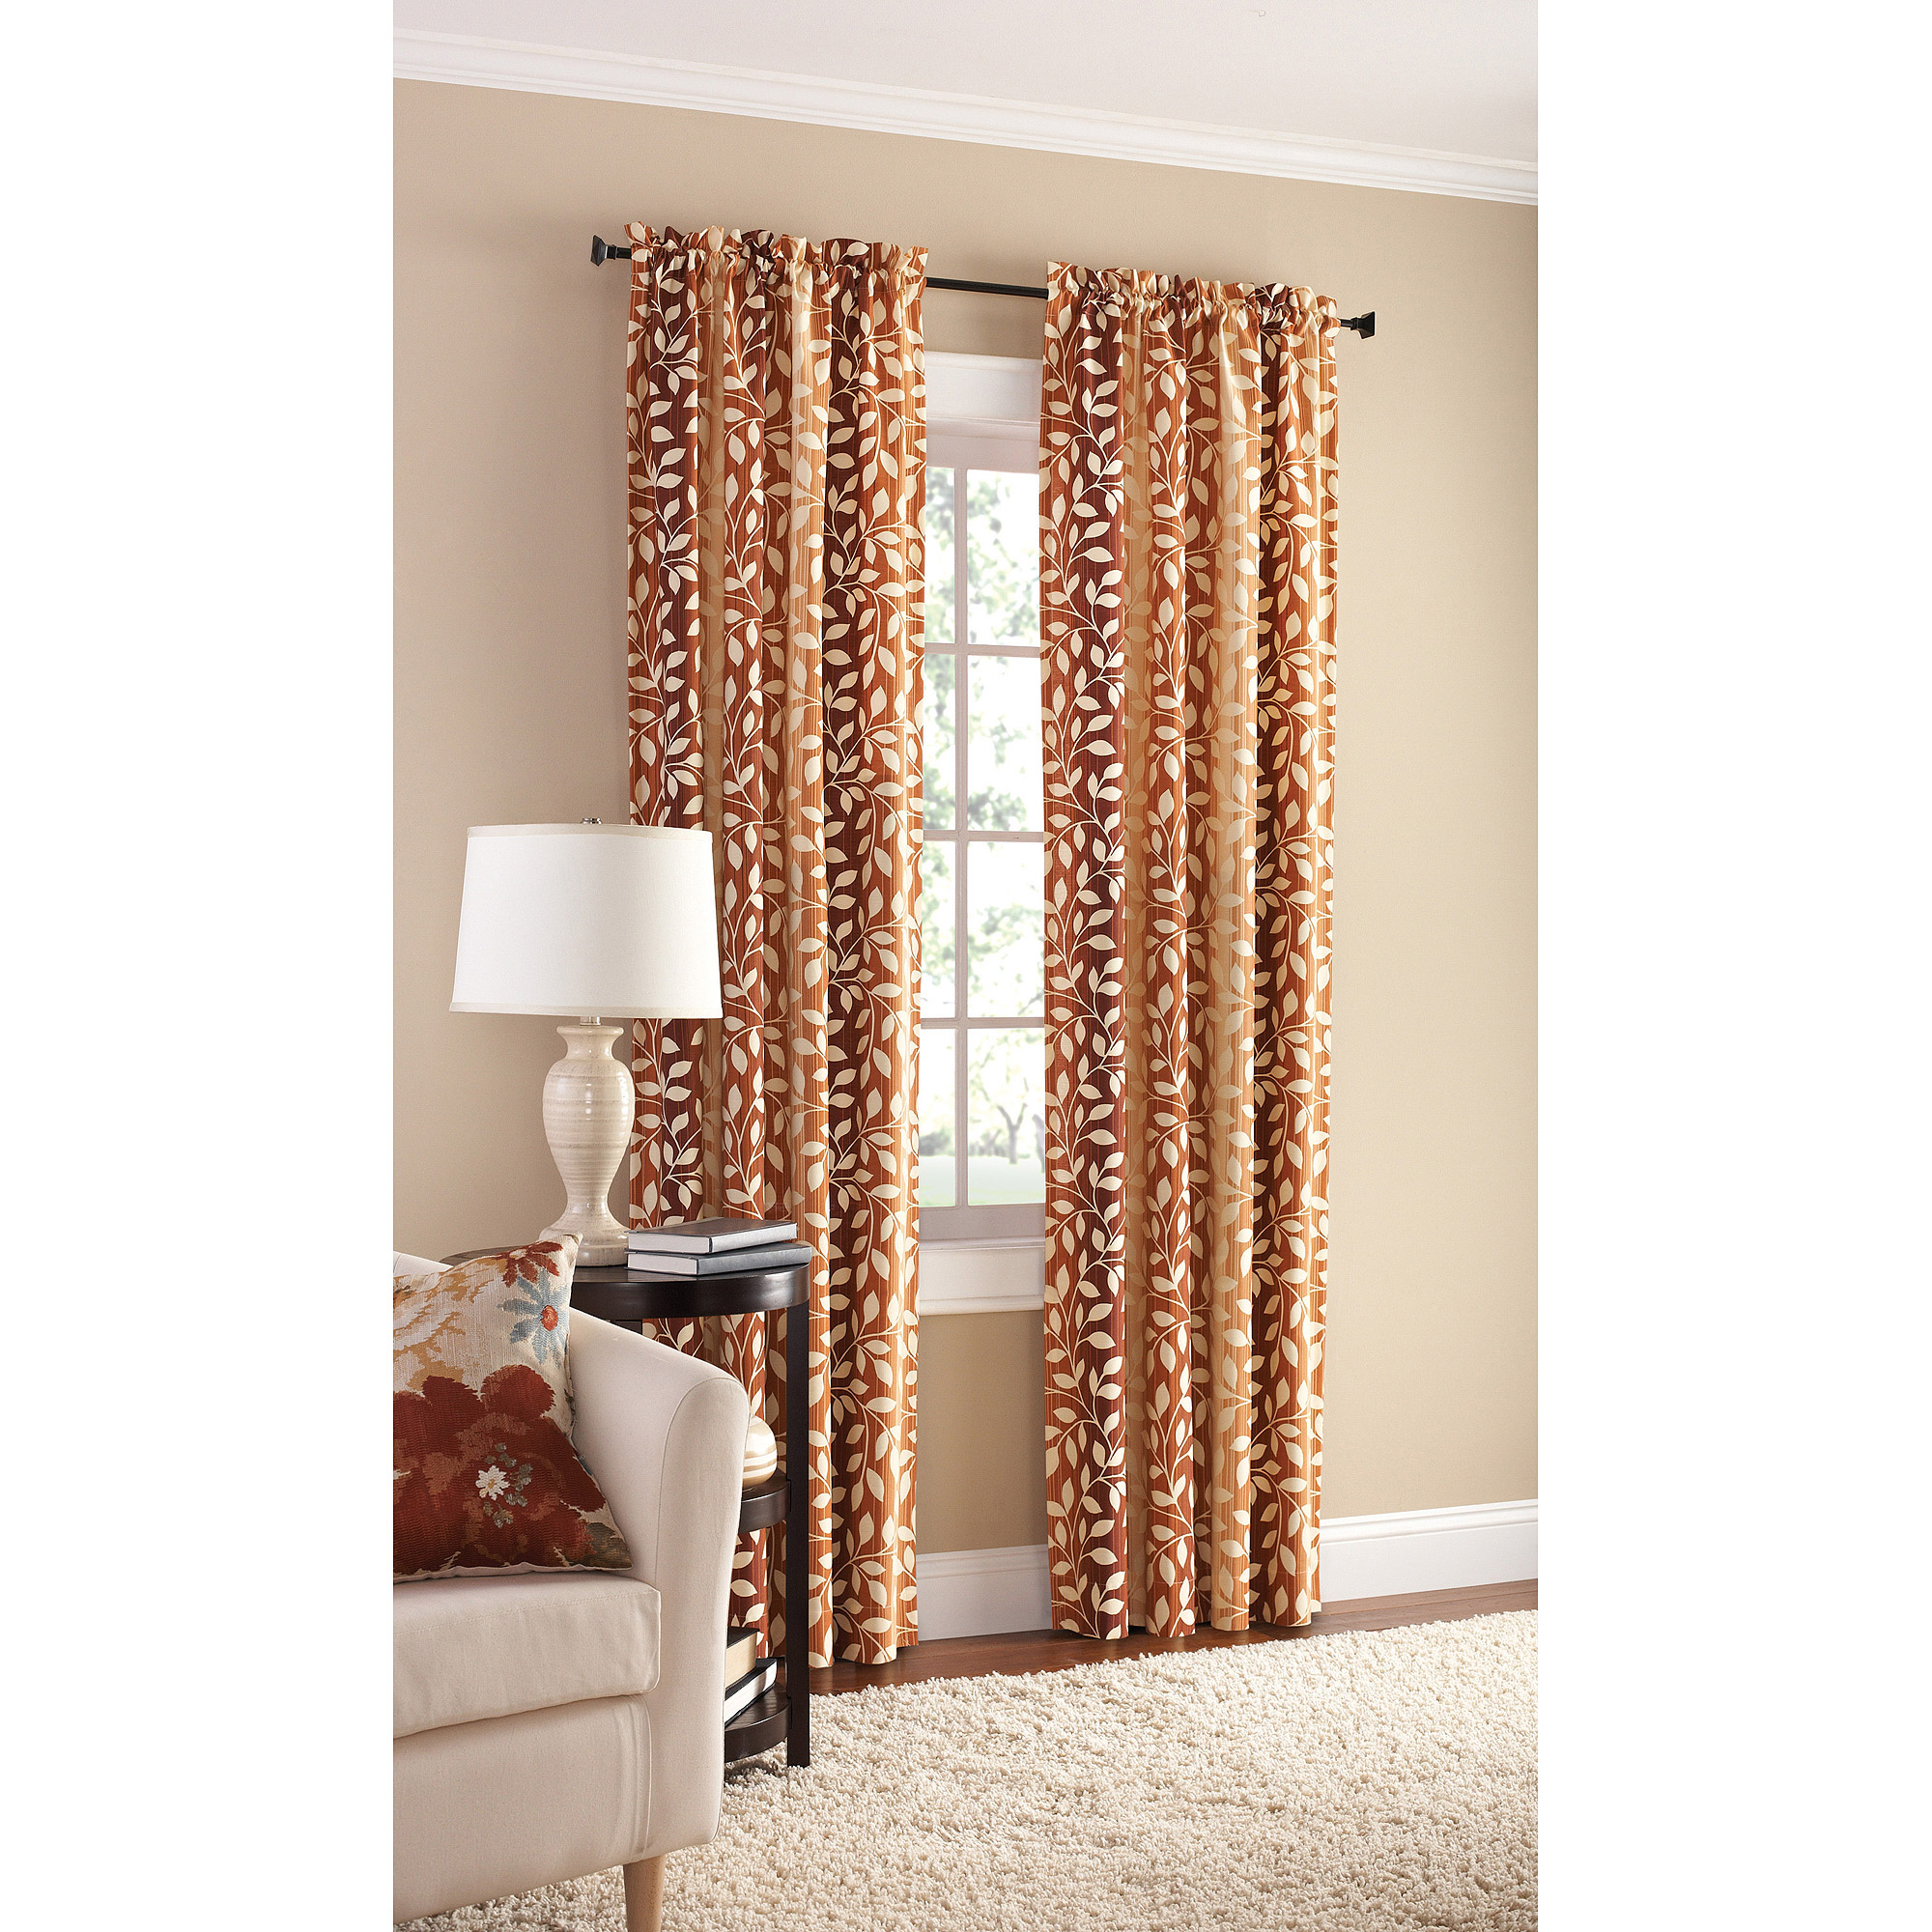 Mainstays Milan Print Curtain Panel, Set of 2 by